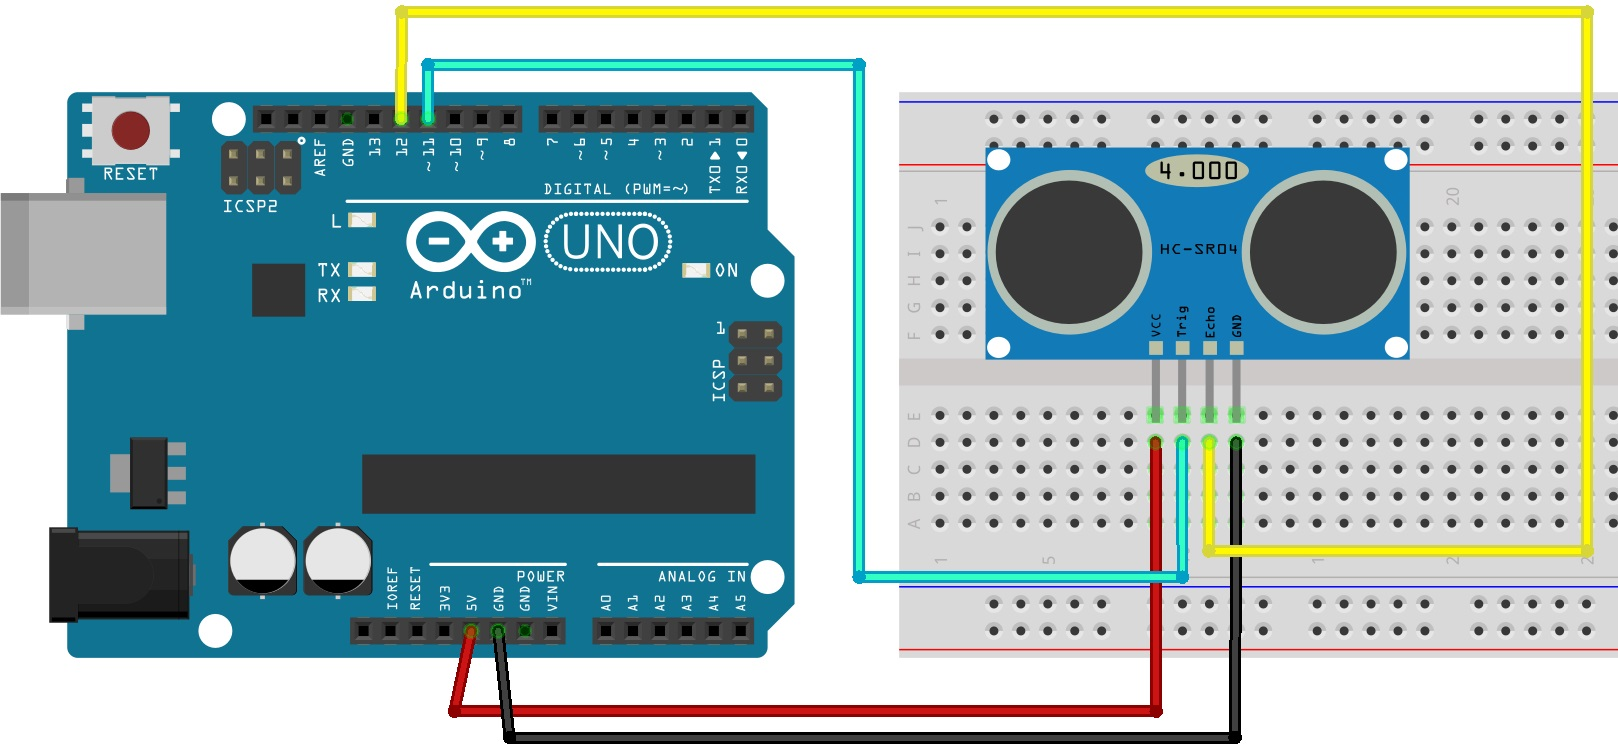 complete guide for ultrasonic sensor hc sr04 with arduino random